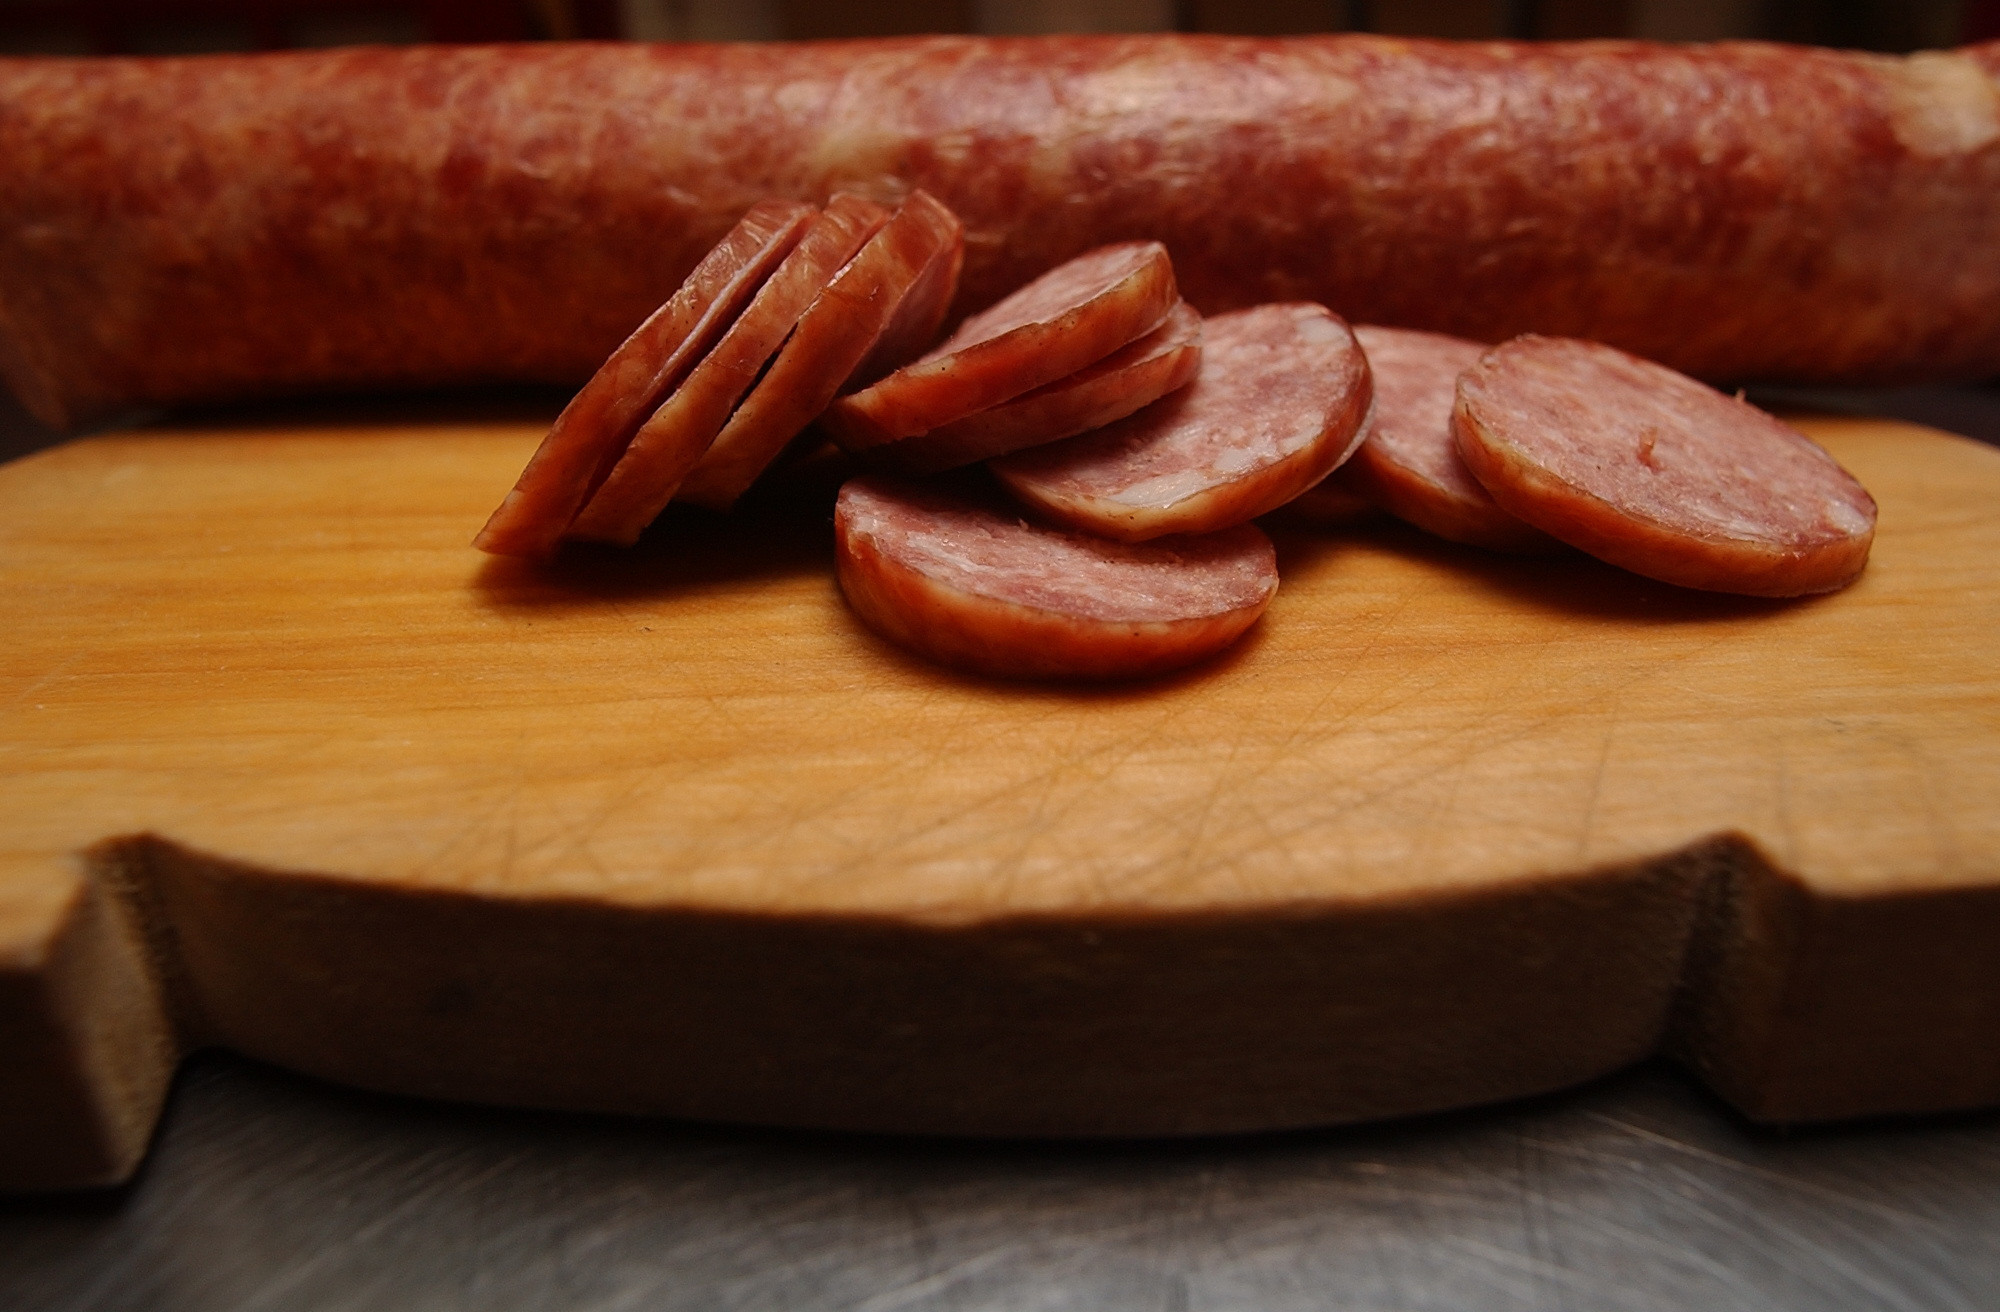 50 things Baltimore foodies must try [Pictures] - Polish sausage from one of the two Ostrowski shops.